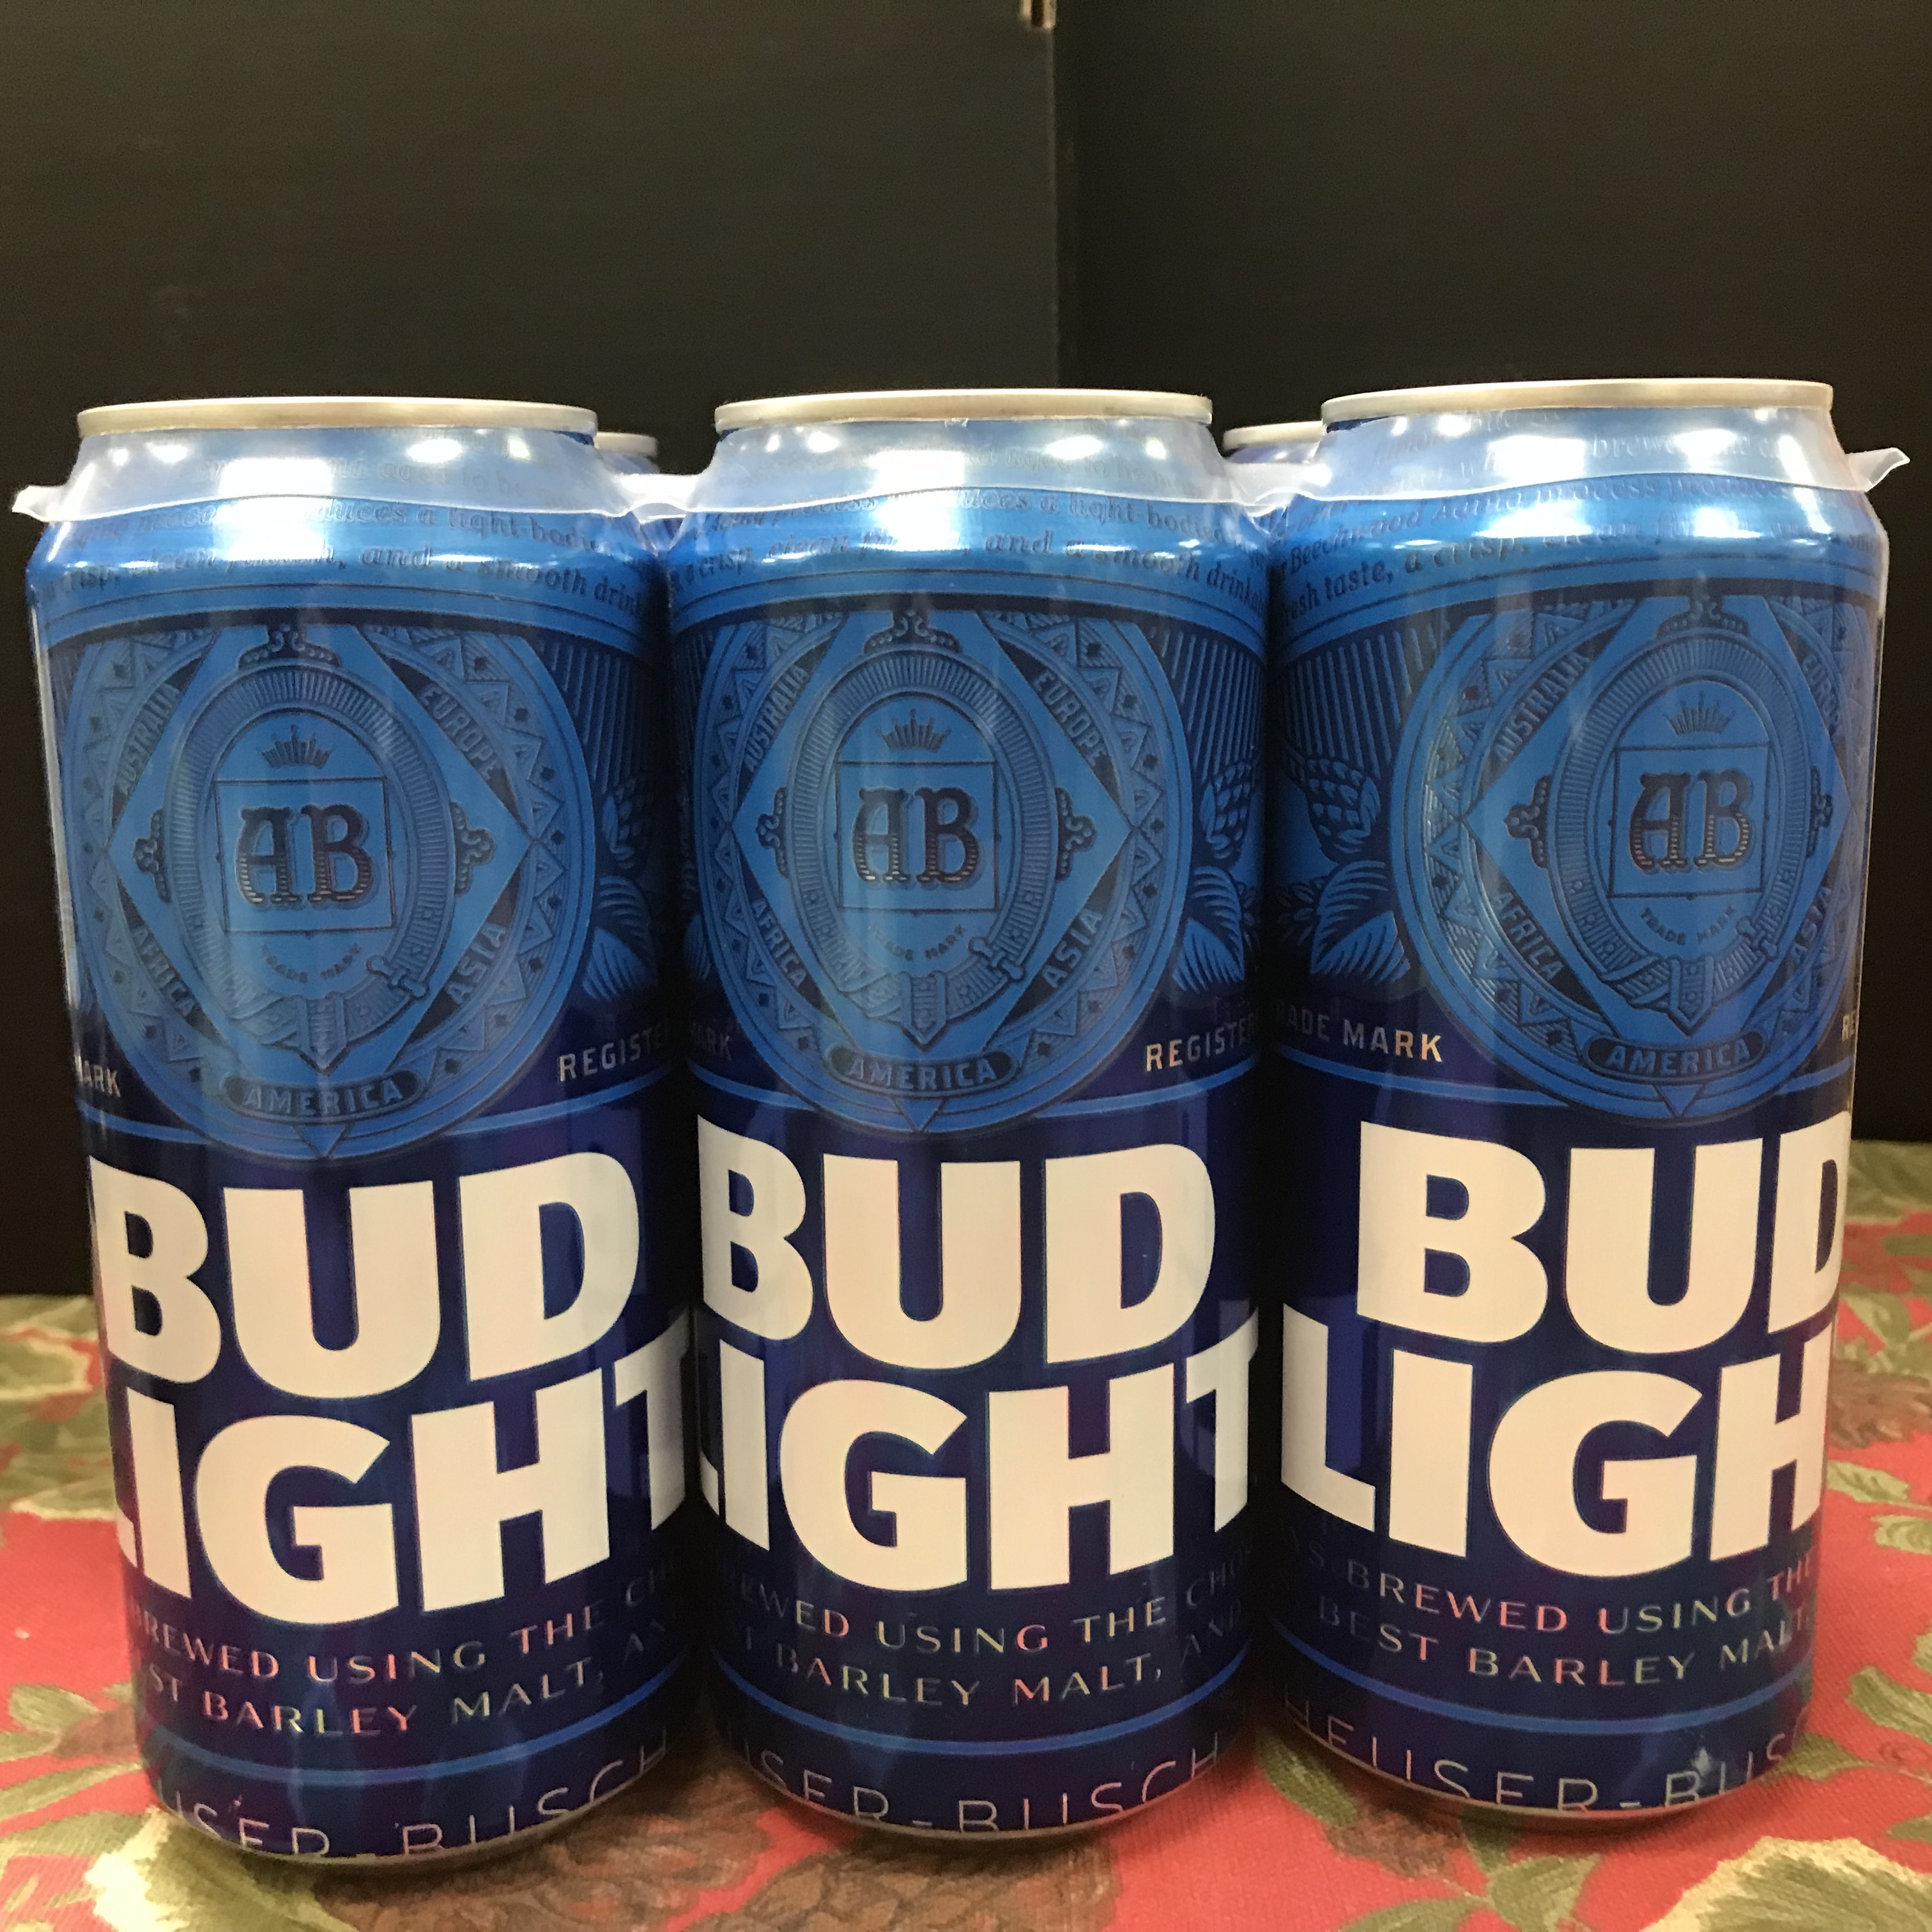 Budweiser Bud Light 6 x 16 oz cans